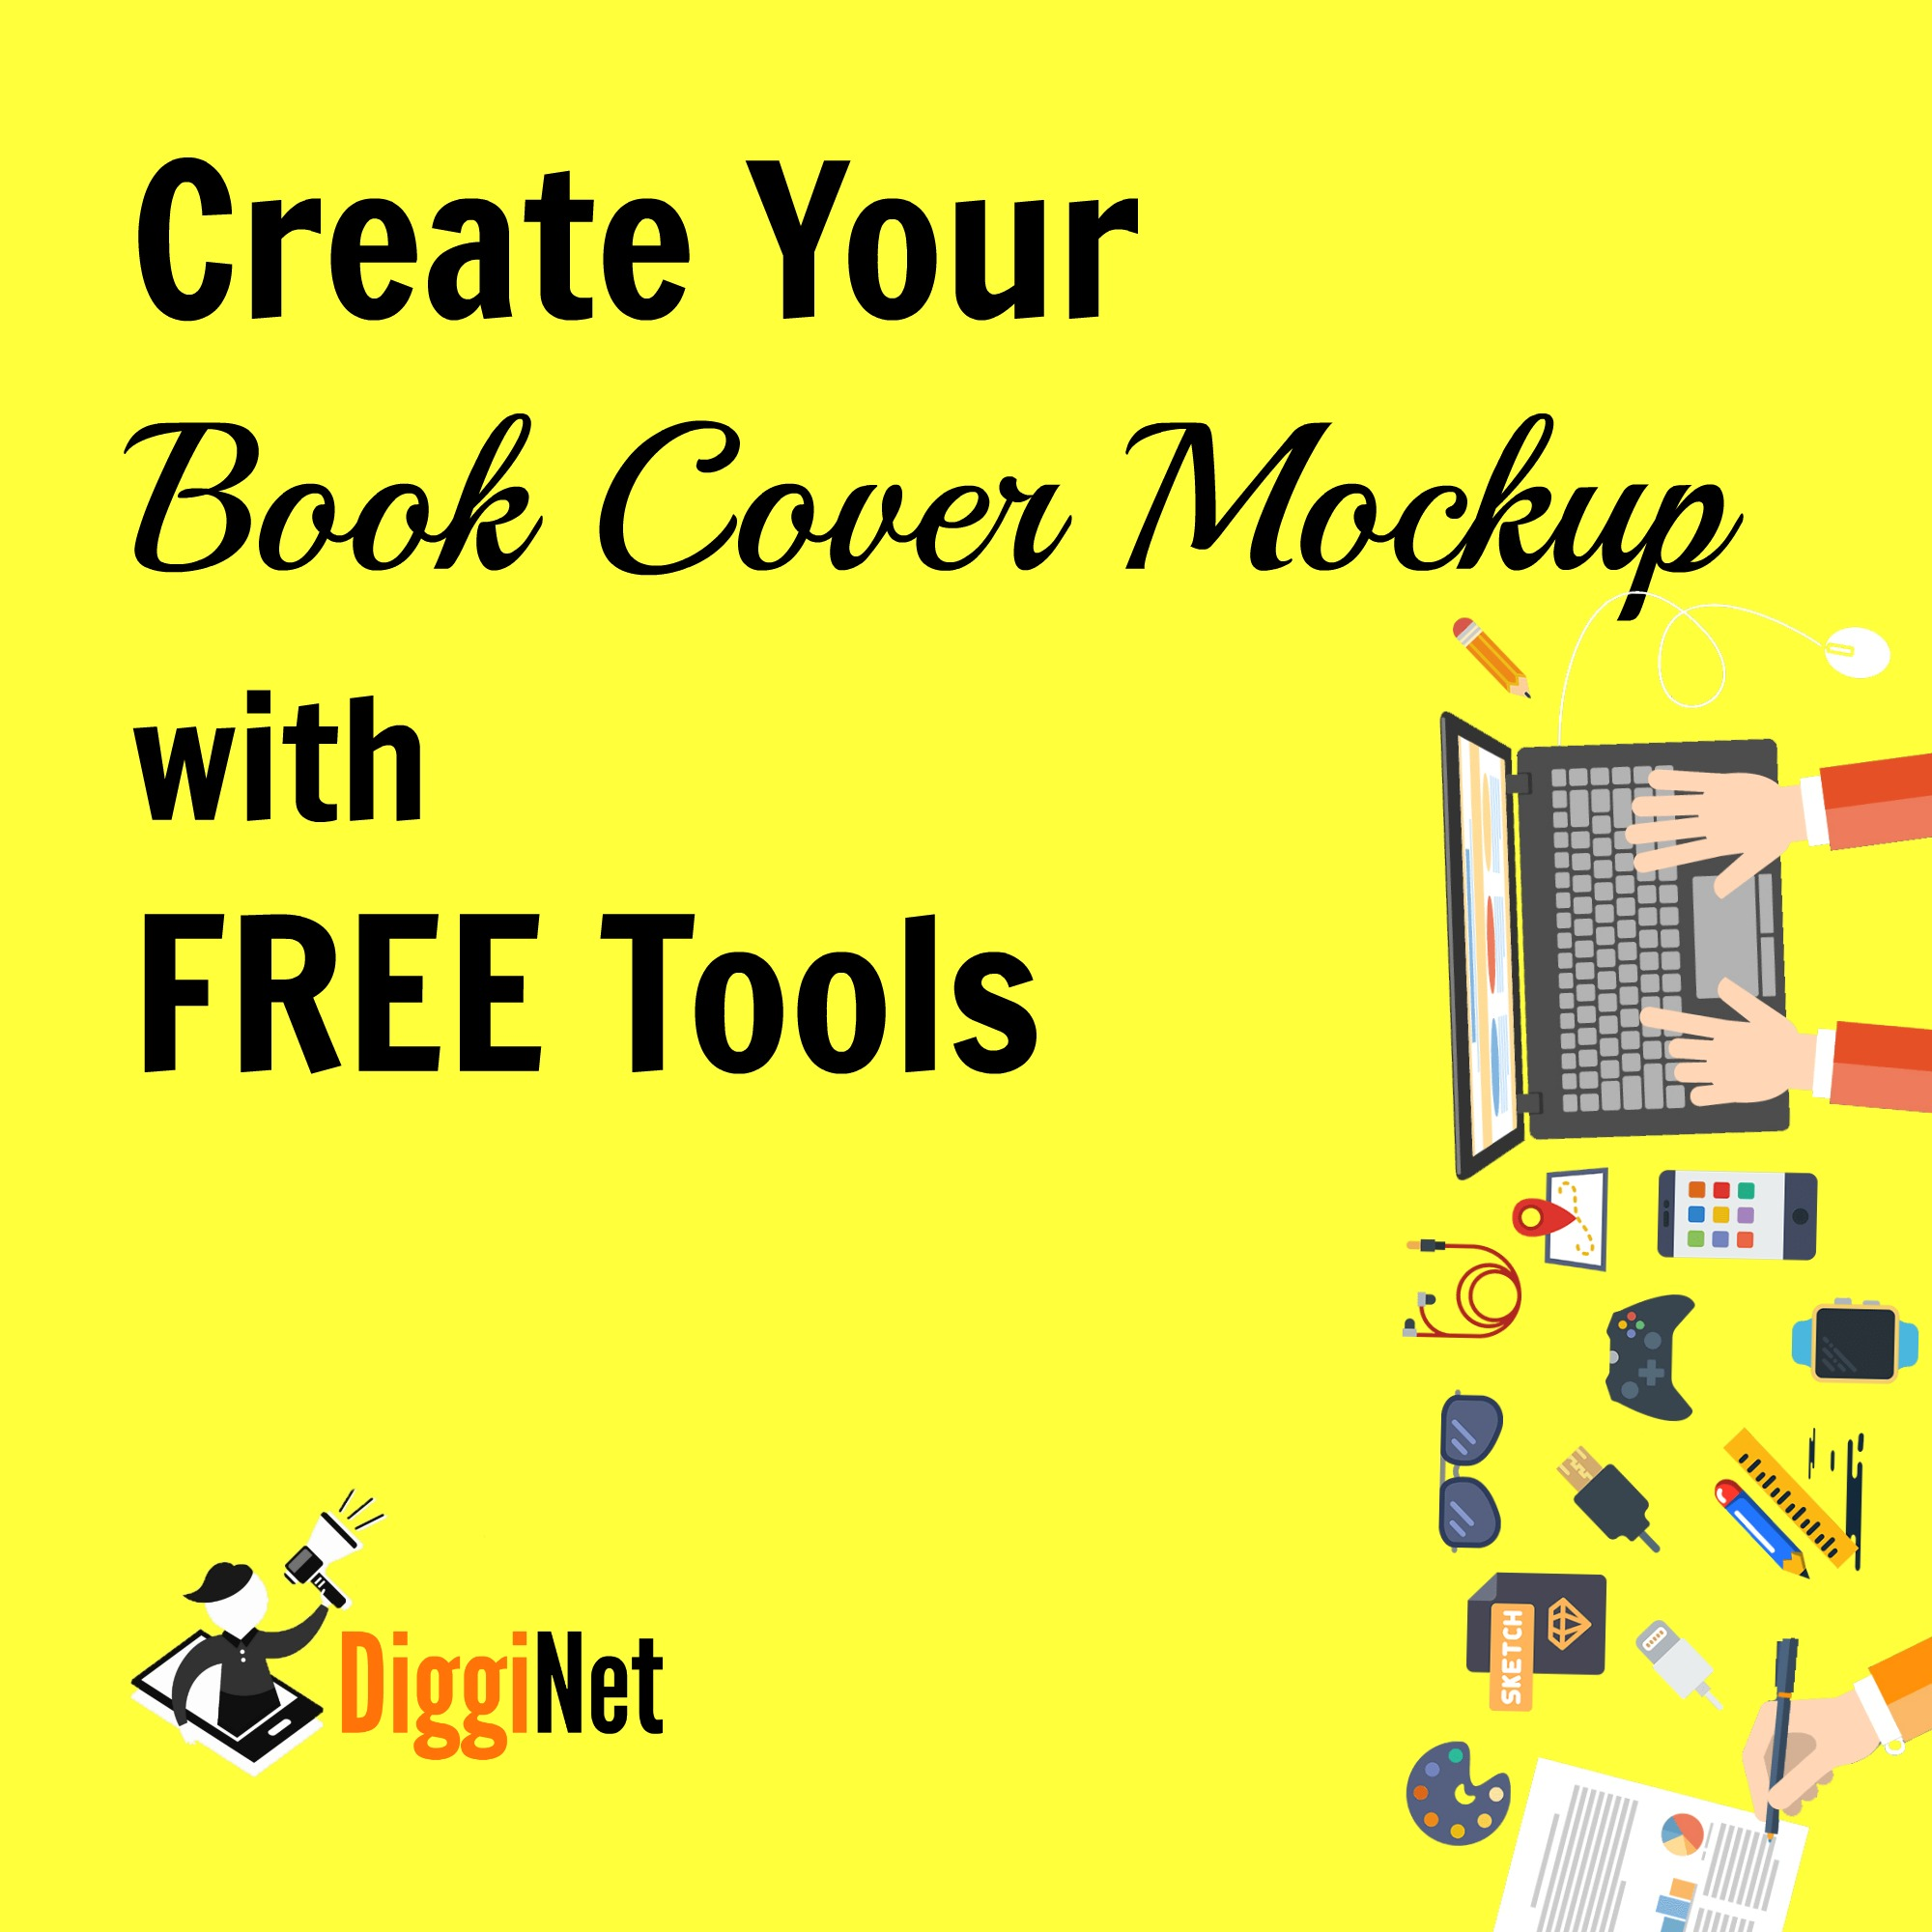 Book Cover Making Free : Create your book cover mockup with free tools design